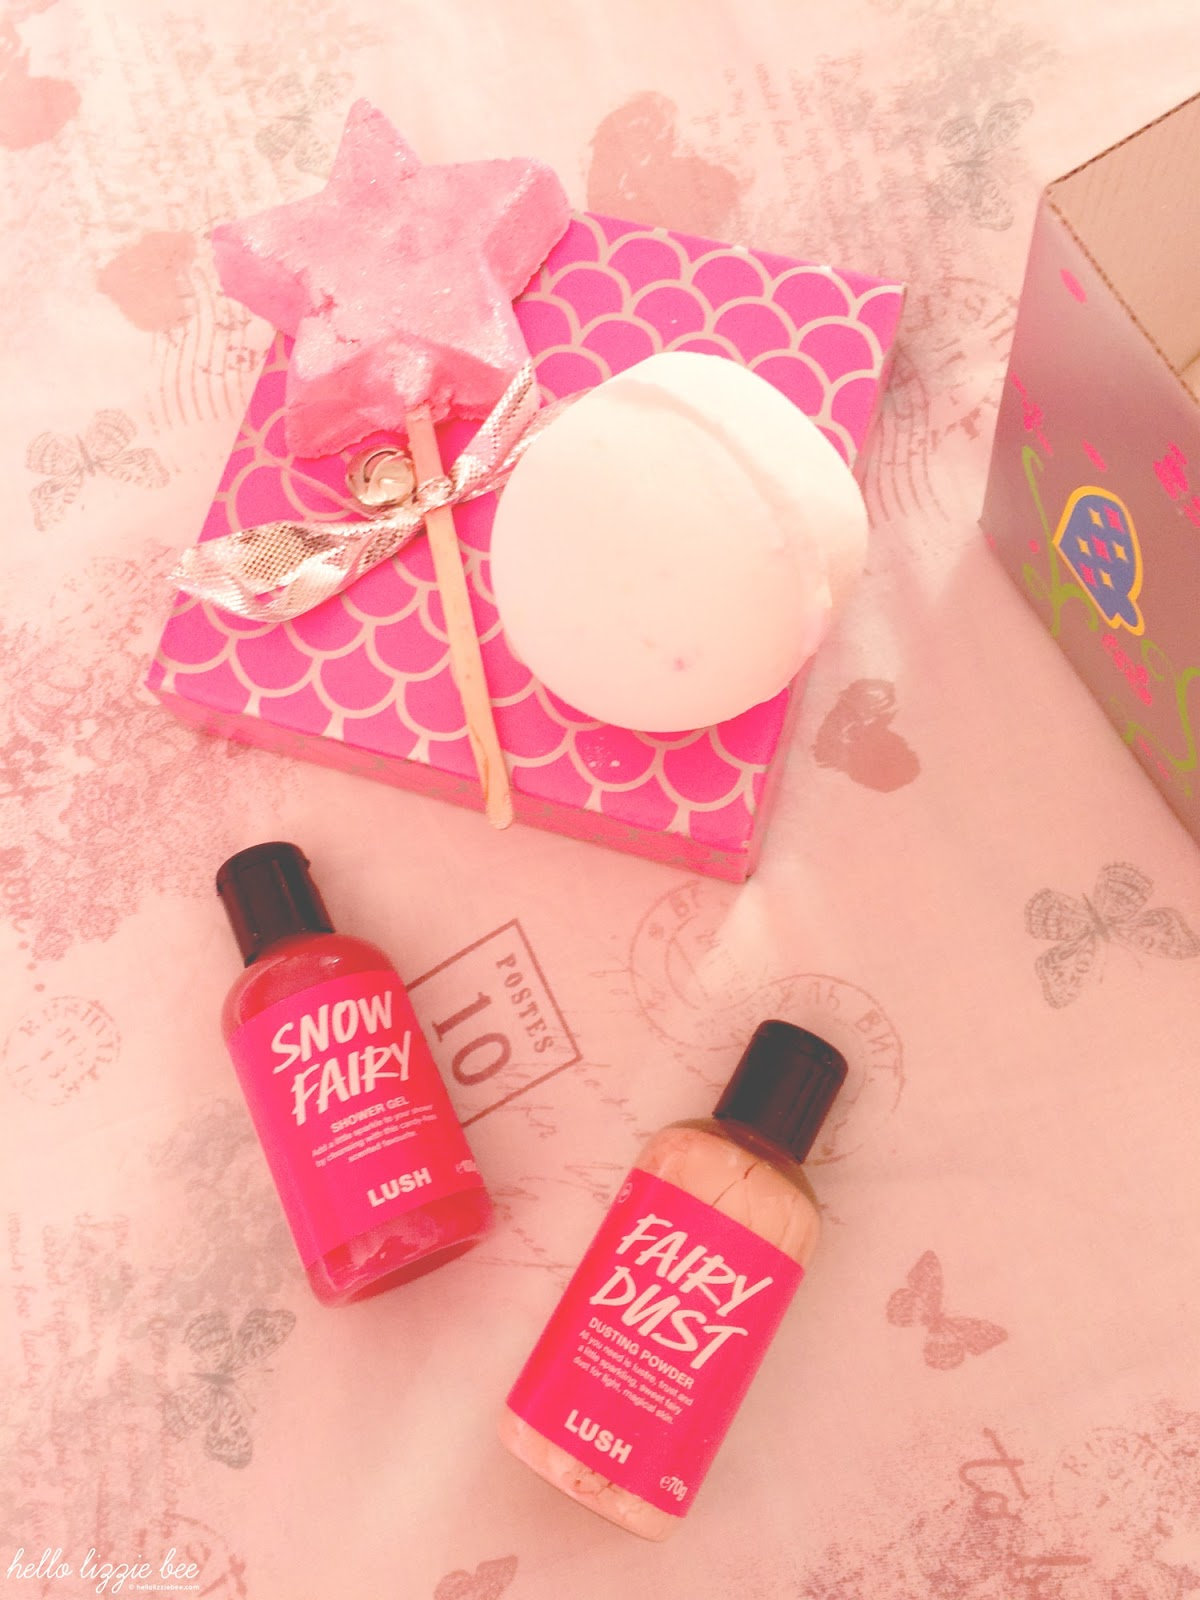 Snow fairy, lush review, christmas gift